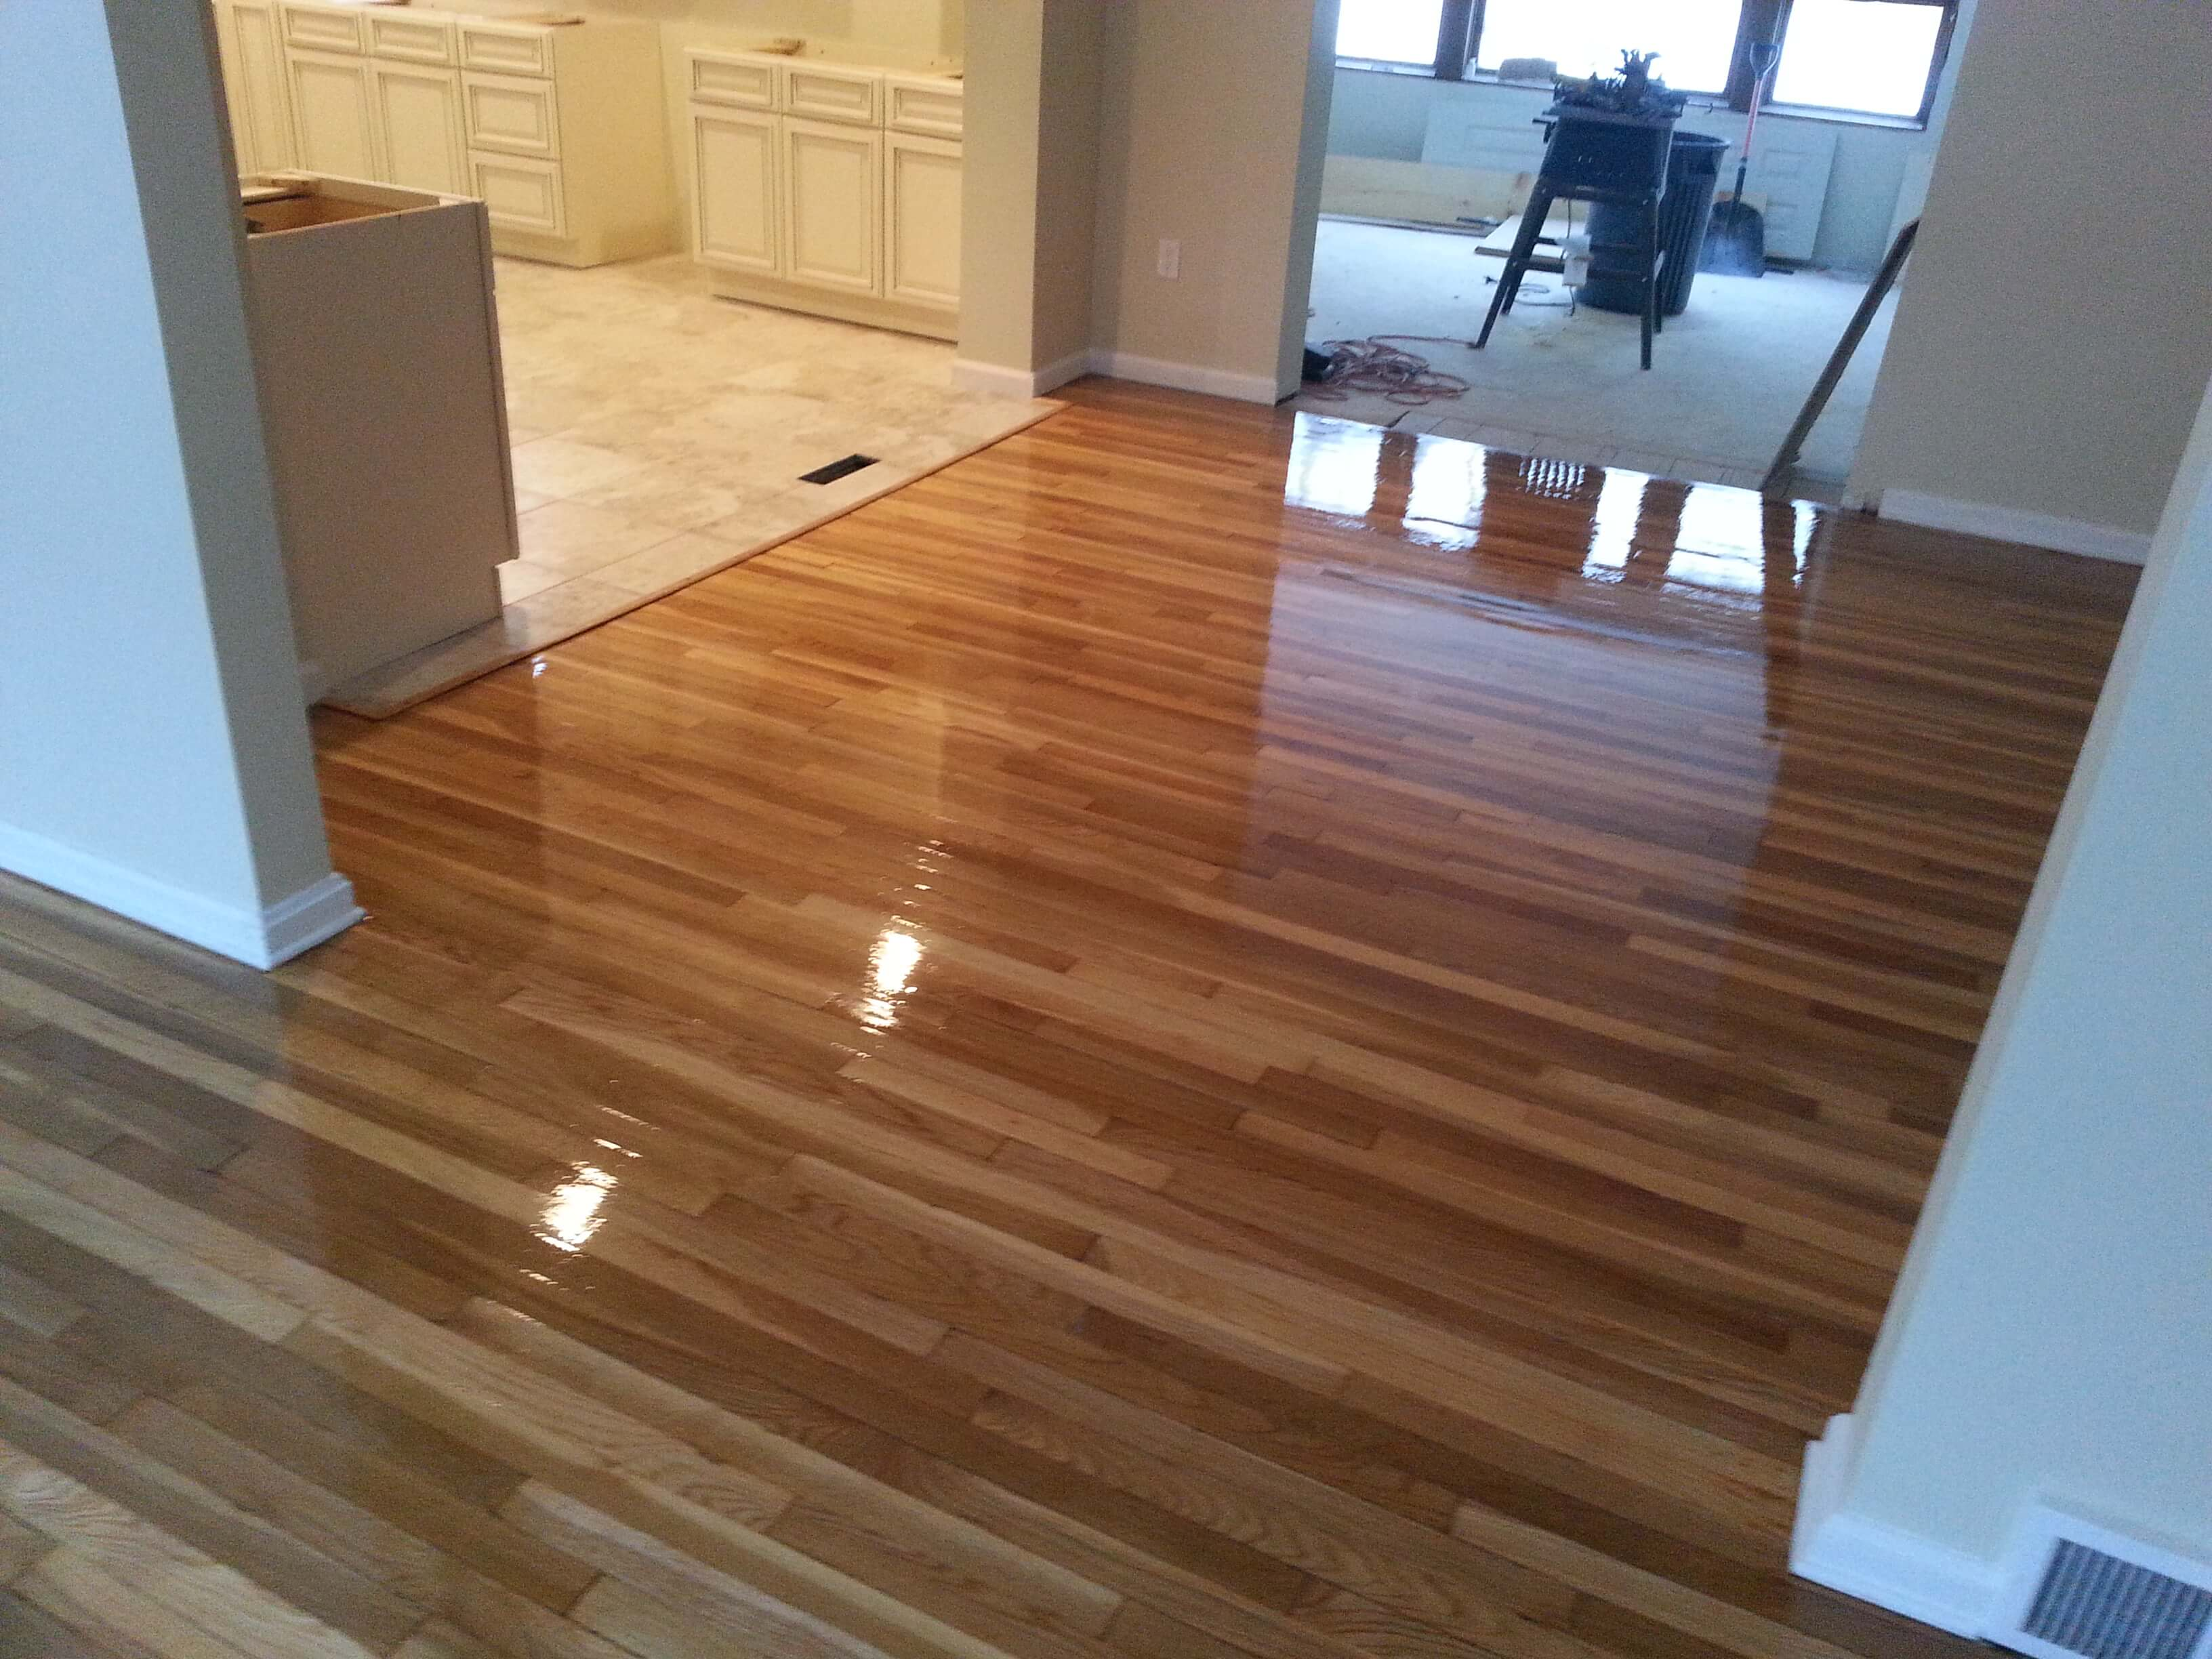 a recently refinished hardwood floor in the Houston, TX area